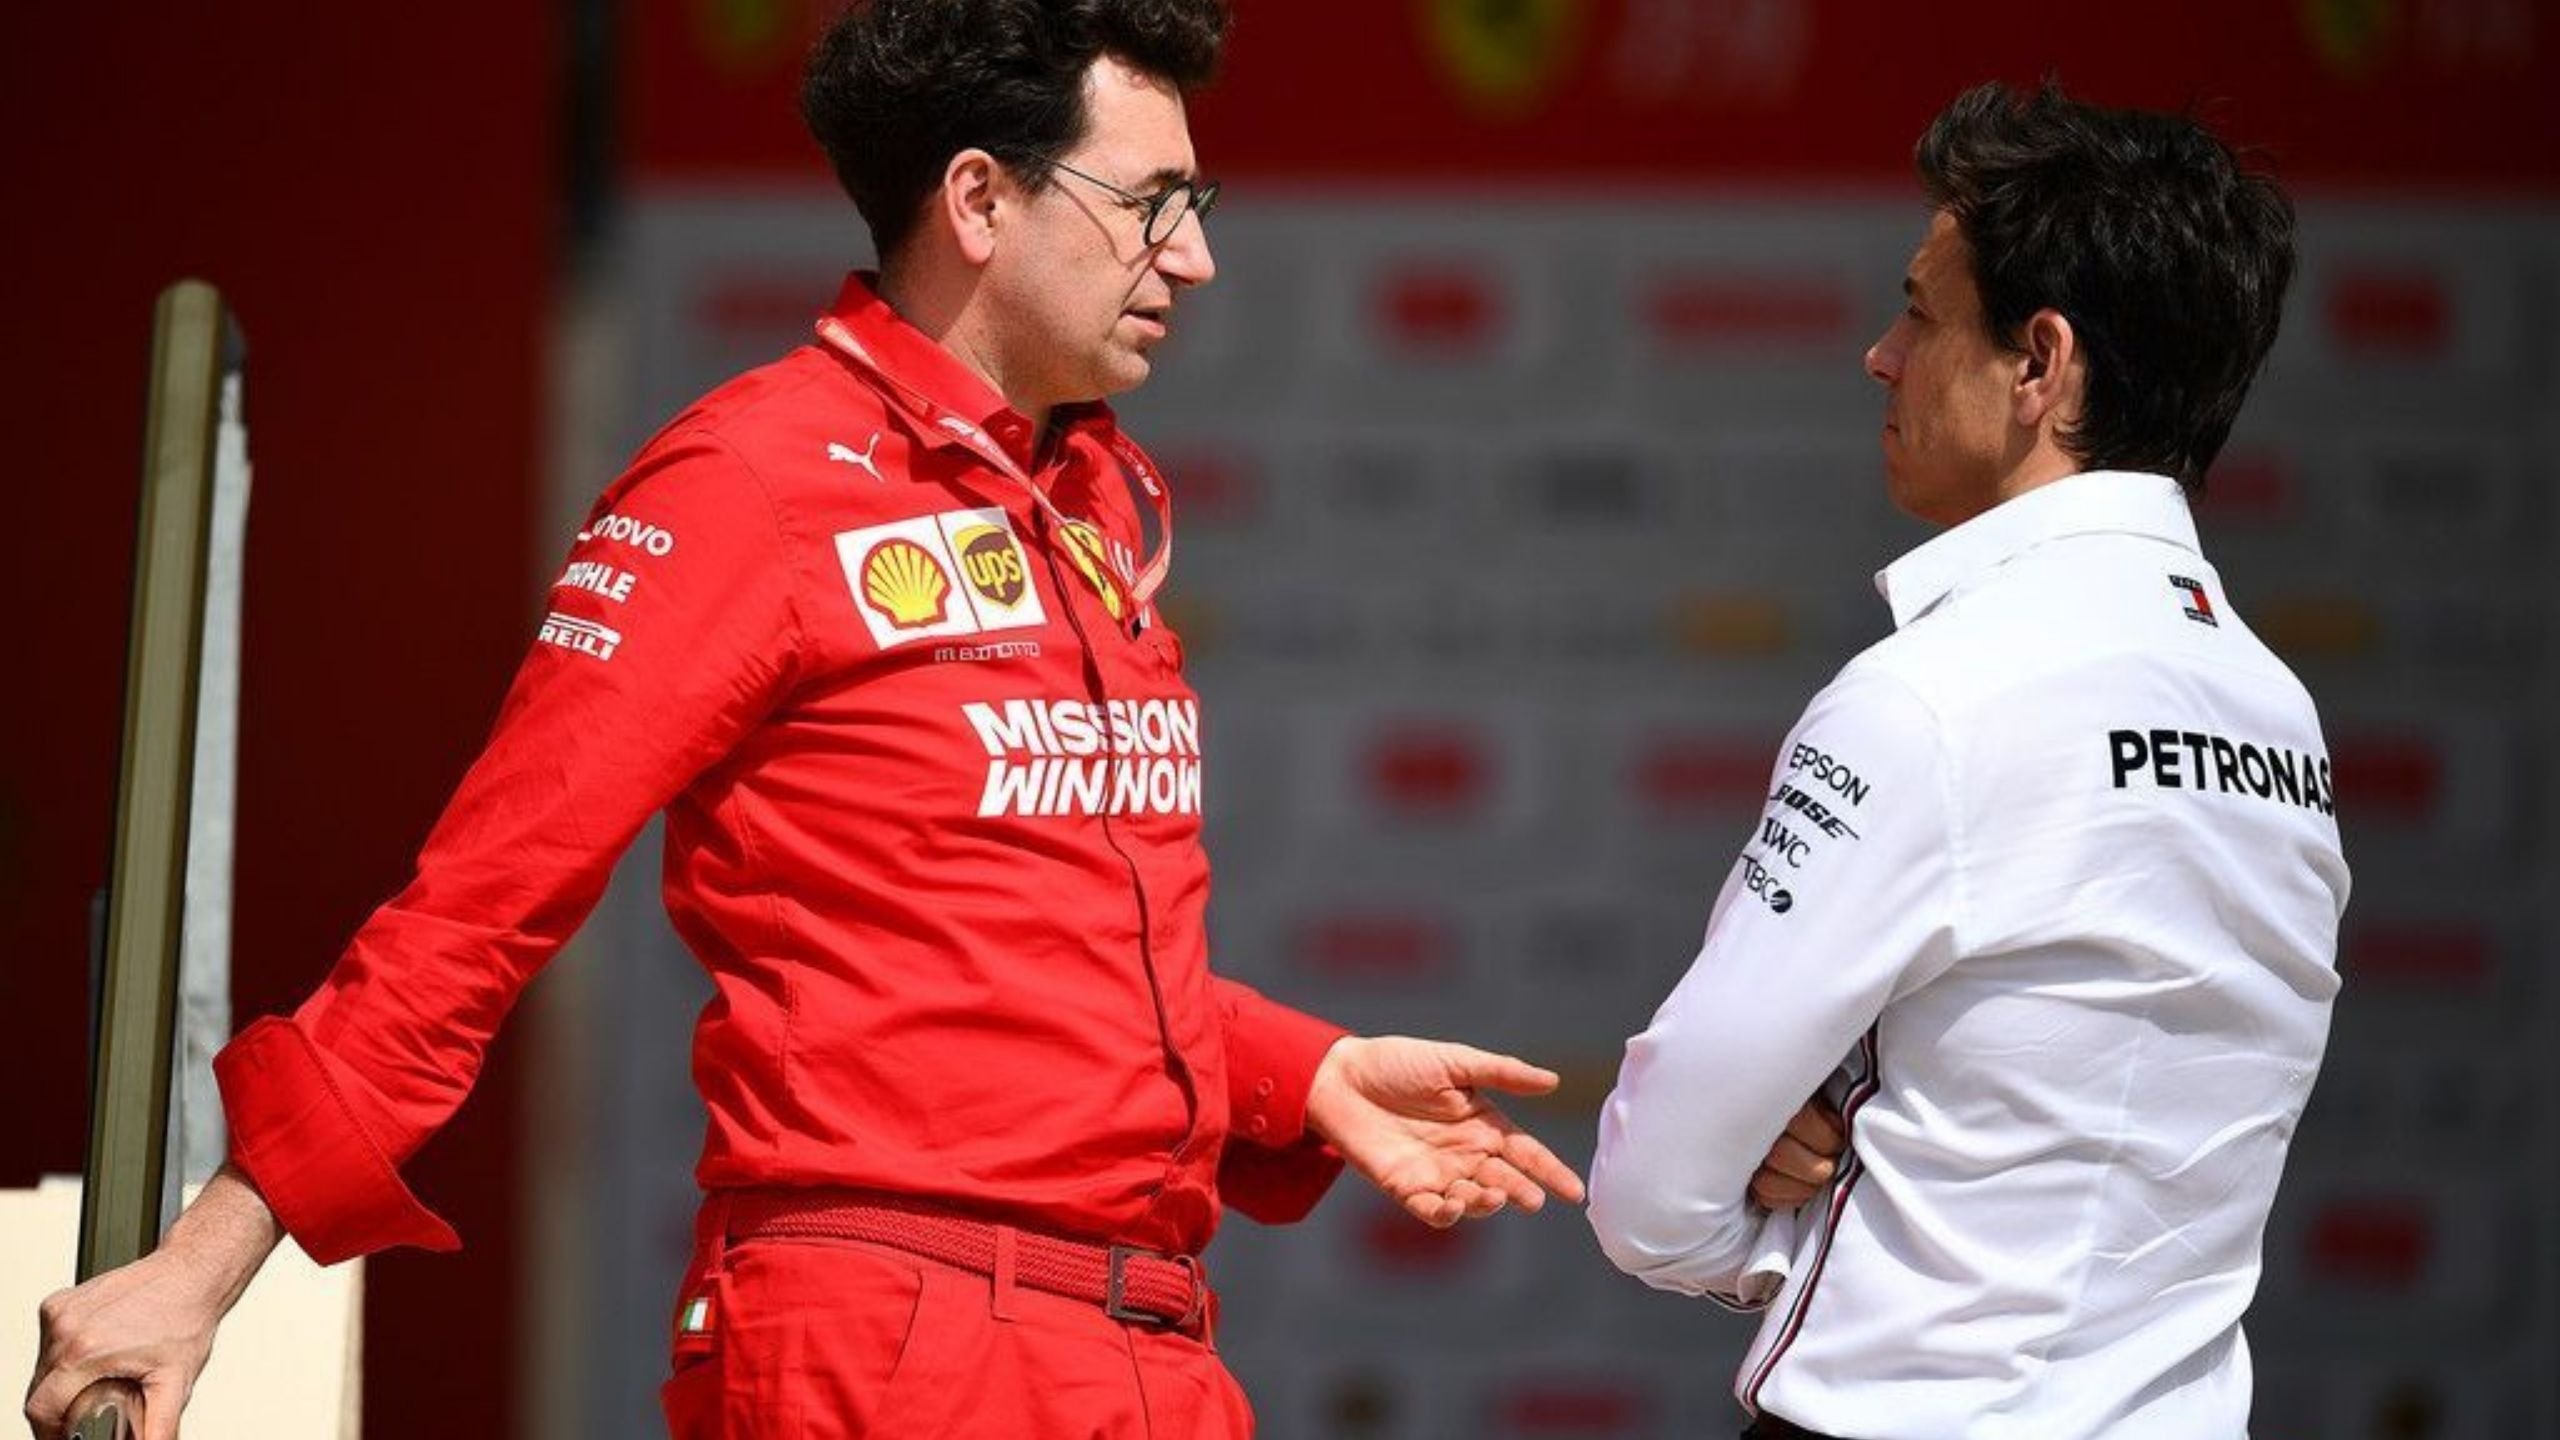 """""""We have seen enough examples"""": Toto Wolff trolls Ferrari for shambolic performances despite huge budget"""